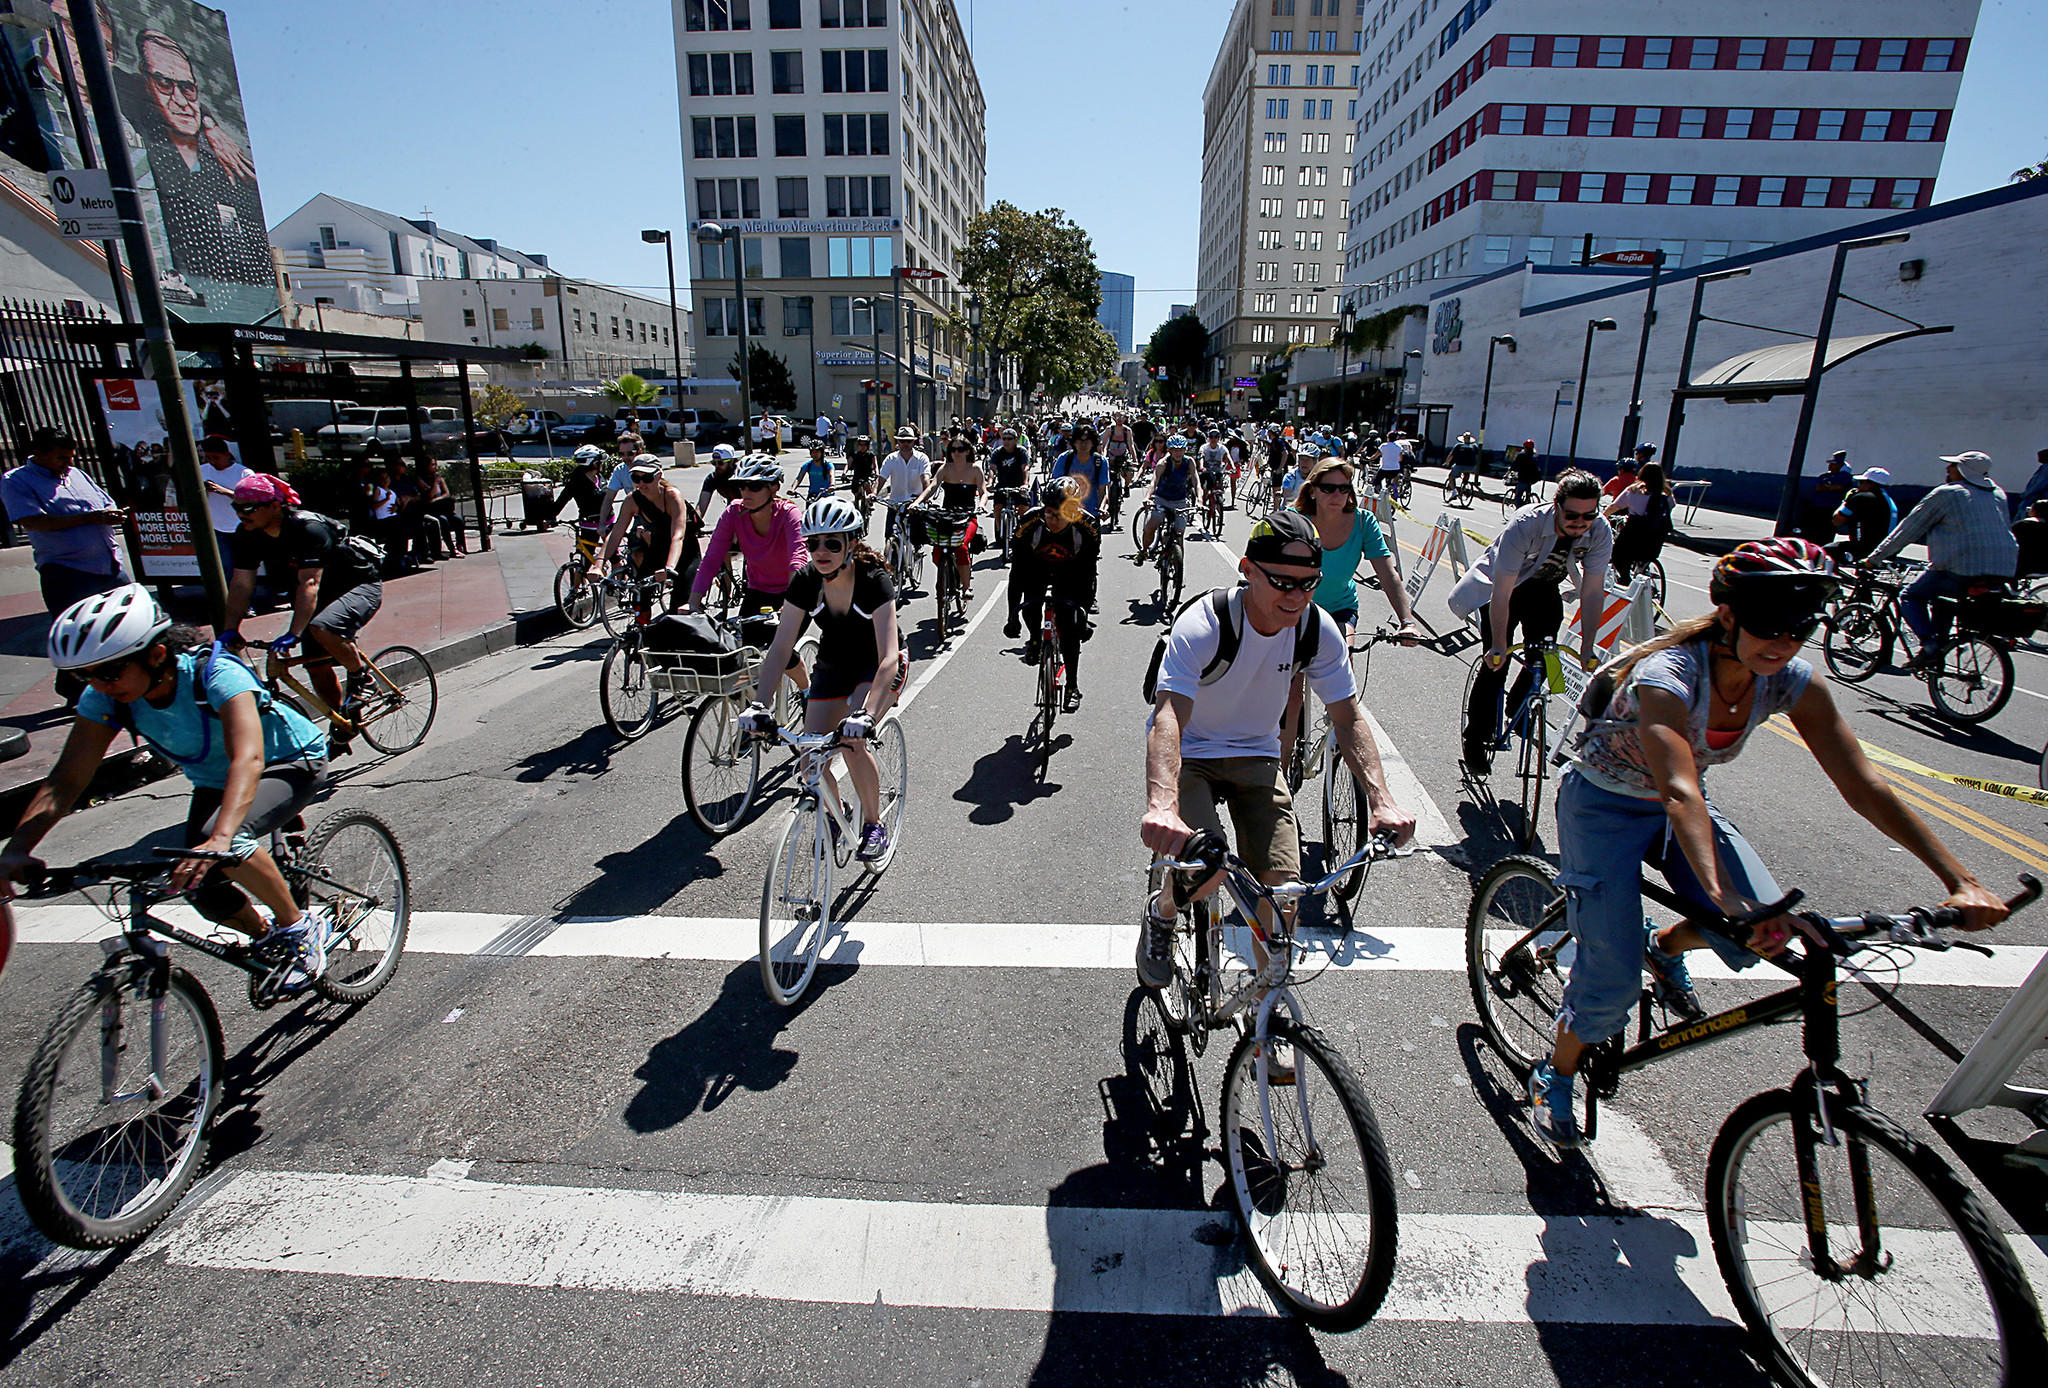 Bicyclists stream through the intersection of Alvarado Street and Wilshire Boulevard in Los Angeles as they participate in the annual CicLAvia bike festival on Sunday.